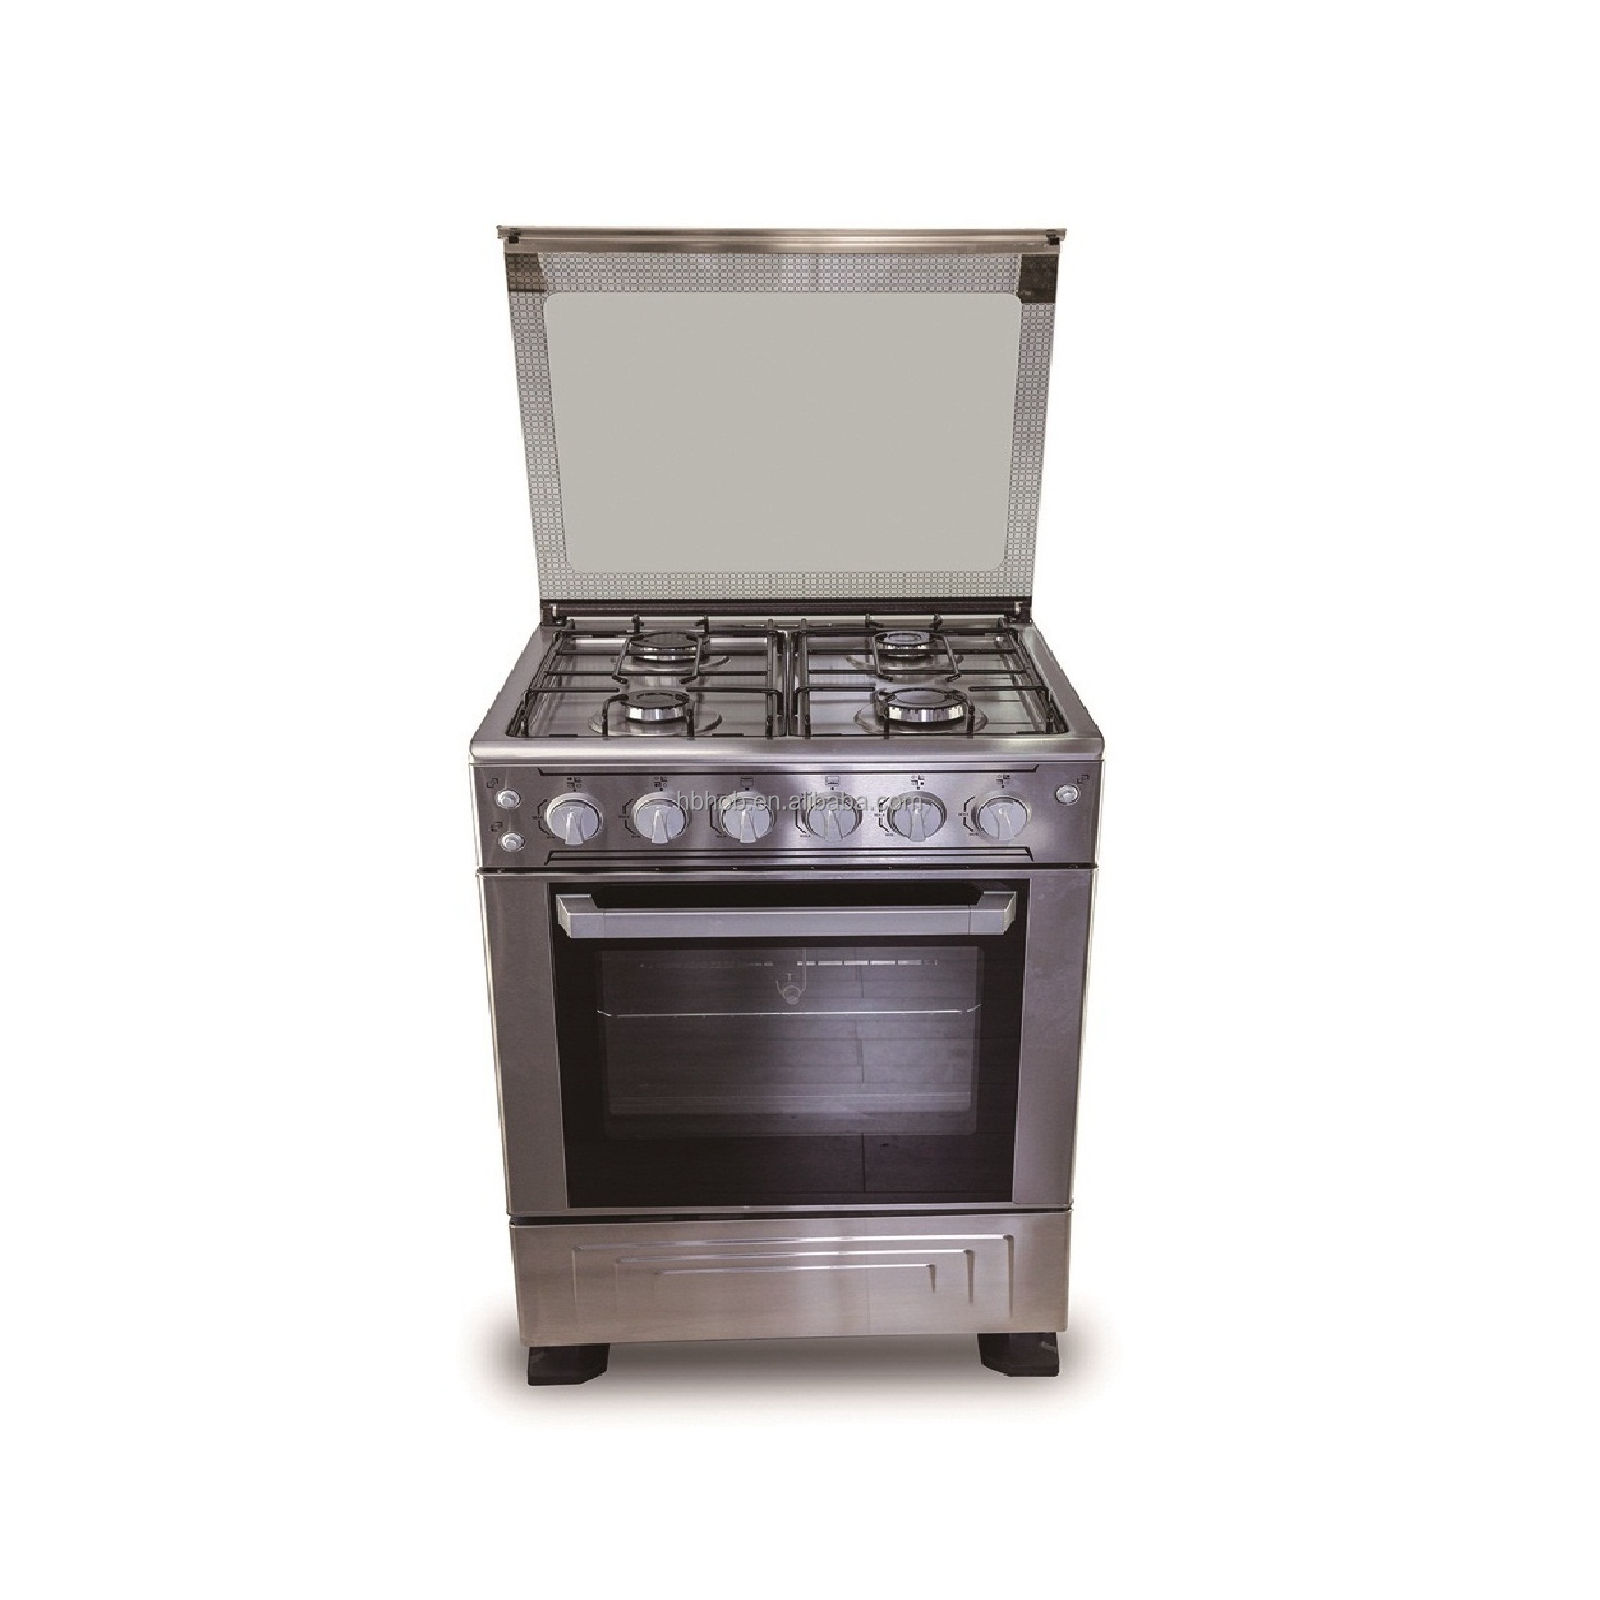 New model OEM/ODM 60cm free standing gas oven